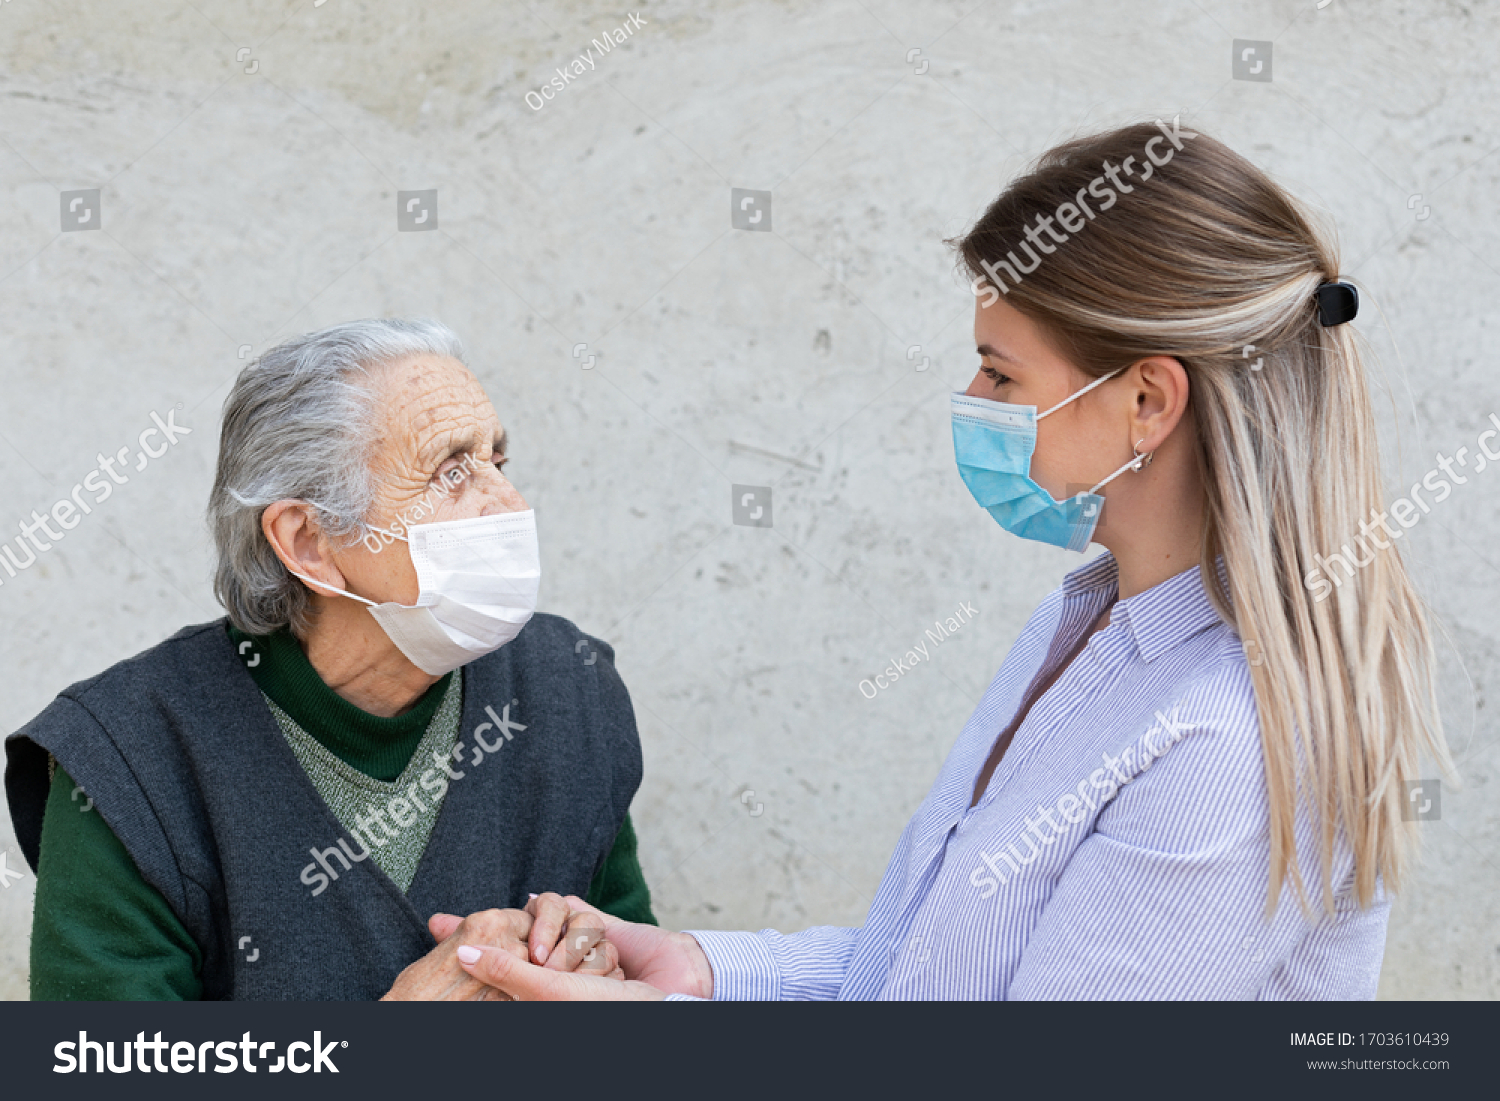 Portrait of friendly caregiver posing with elderly ill woman wearing surgical mask because of covid-19 pandemic #1703610439